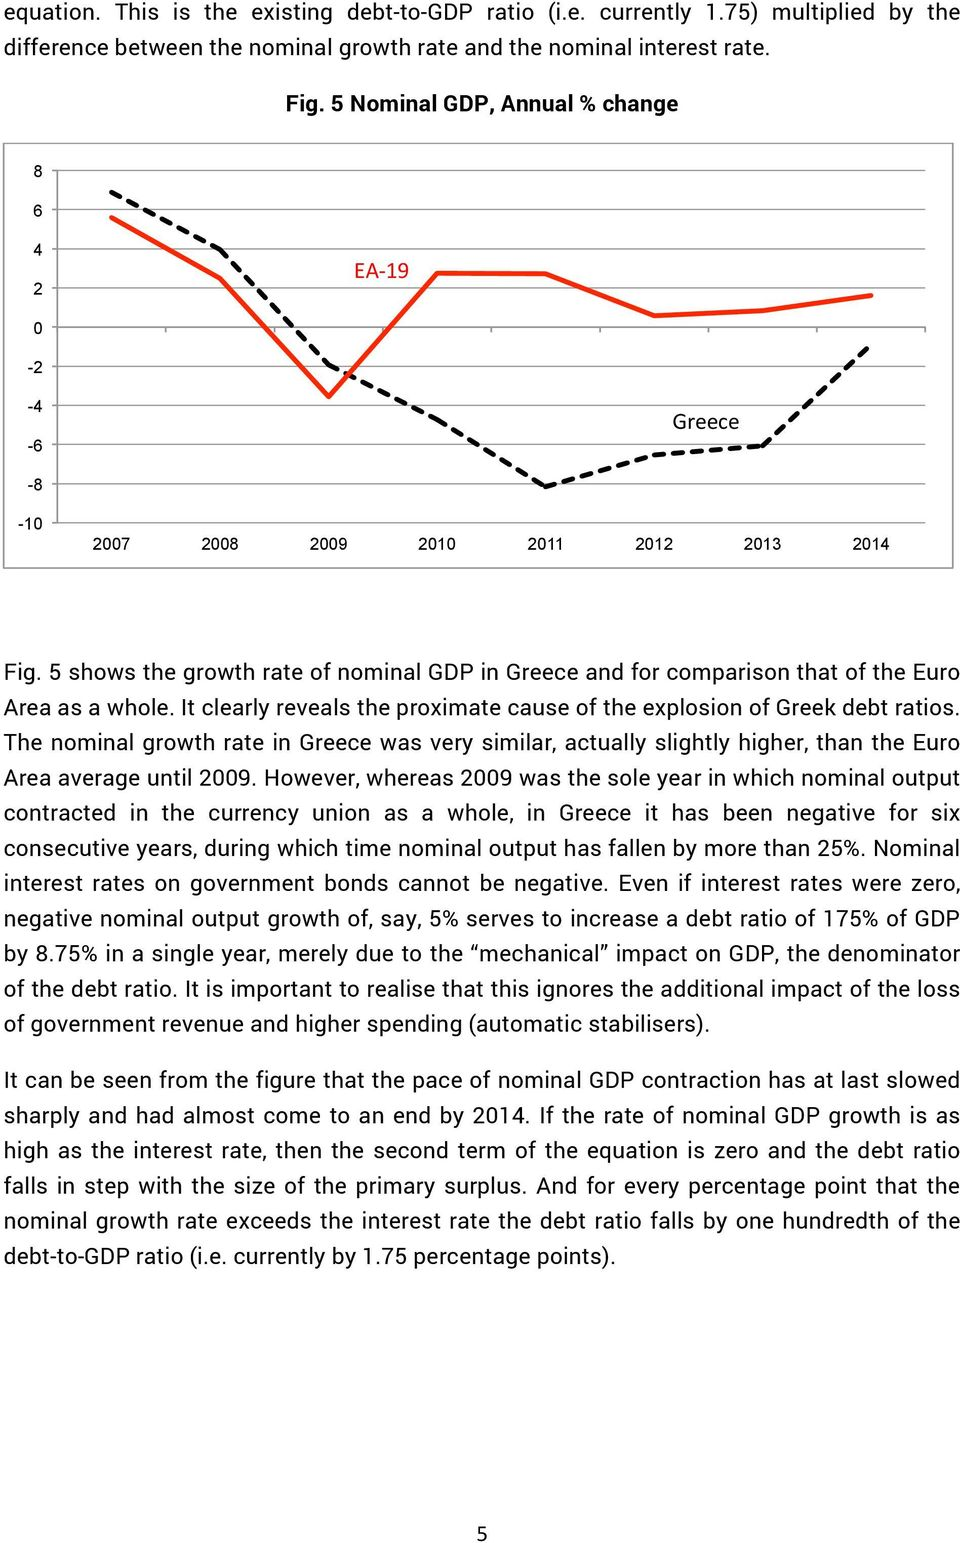 5 shows the growth rate of nominal GDP in Greece and for comparison that of the Euro Area as a whole. It clearly reveals the proximate cause of the explosion of Greek debt ratios.